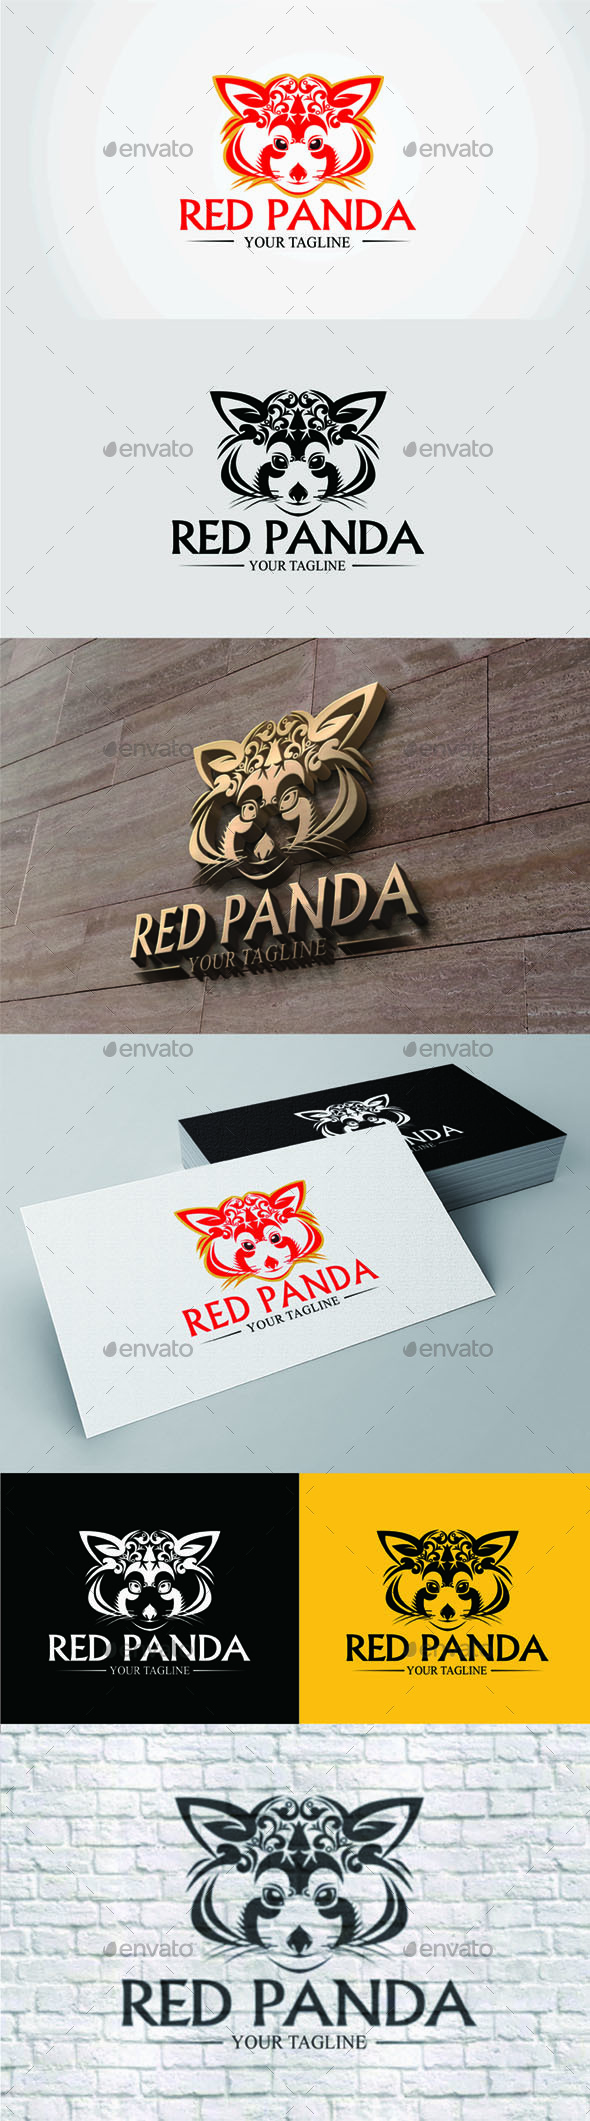 Red Panda - Logo - Animals Logo Templates